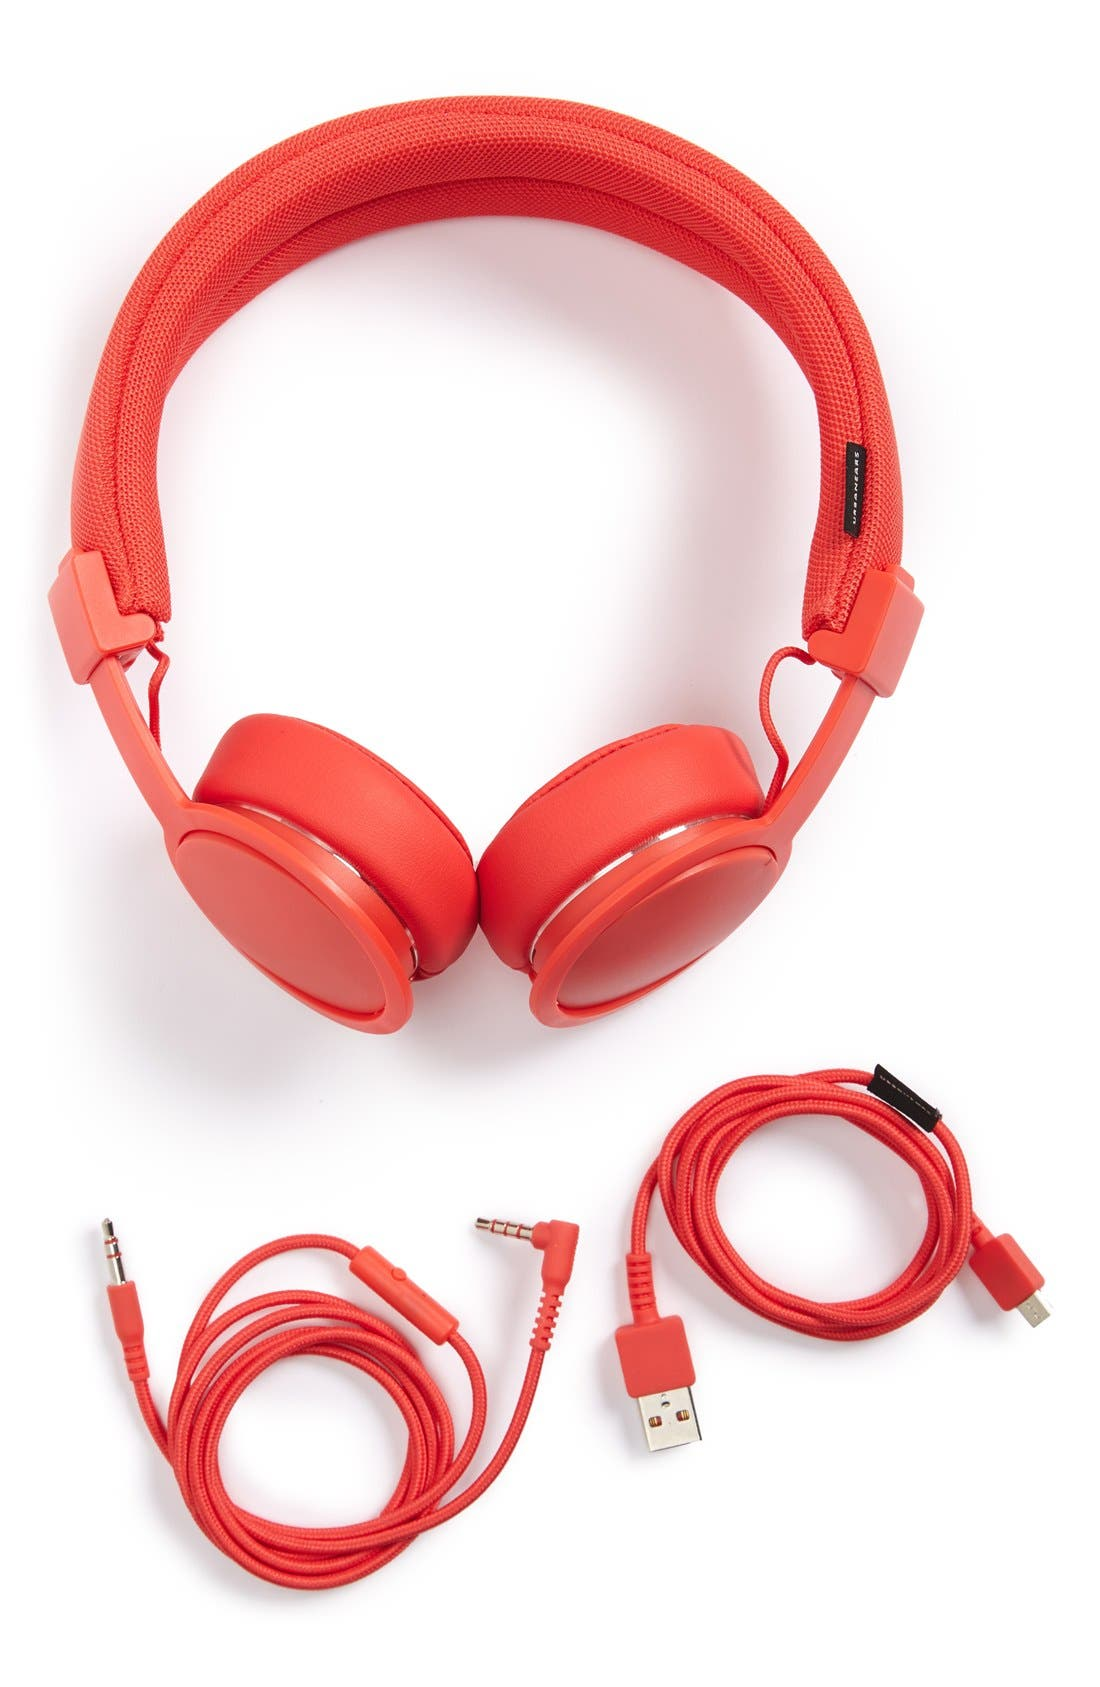 'Plattan ADV Wireless' Bluetooth<sup>®</sup> On-Ear Headphones,                             Main thumbnail 1, color,                             TOMATO